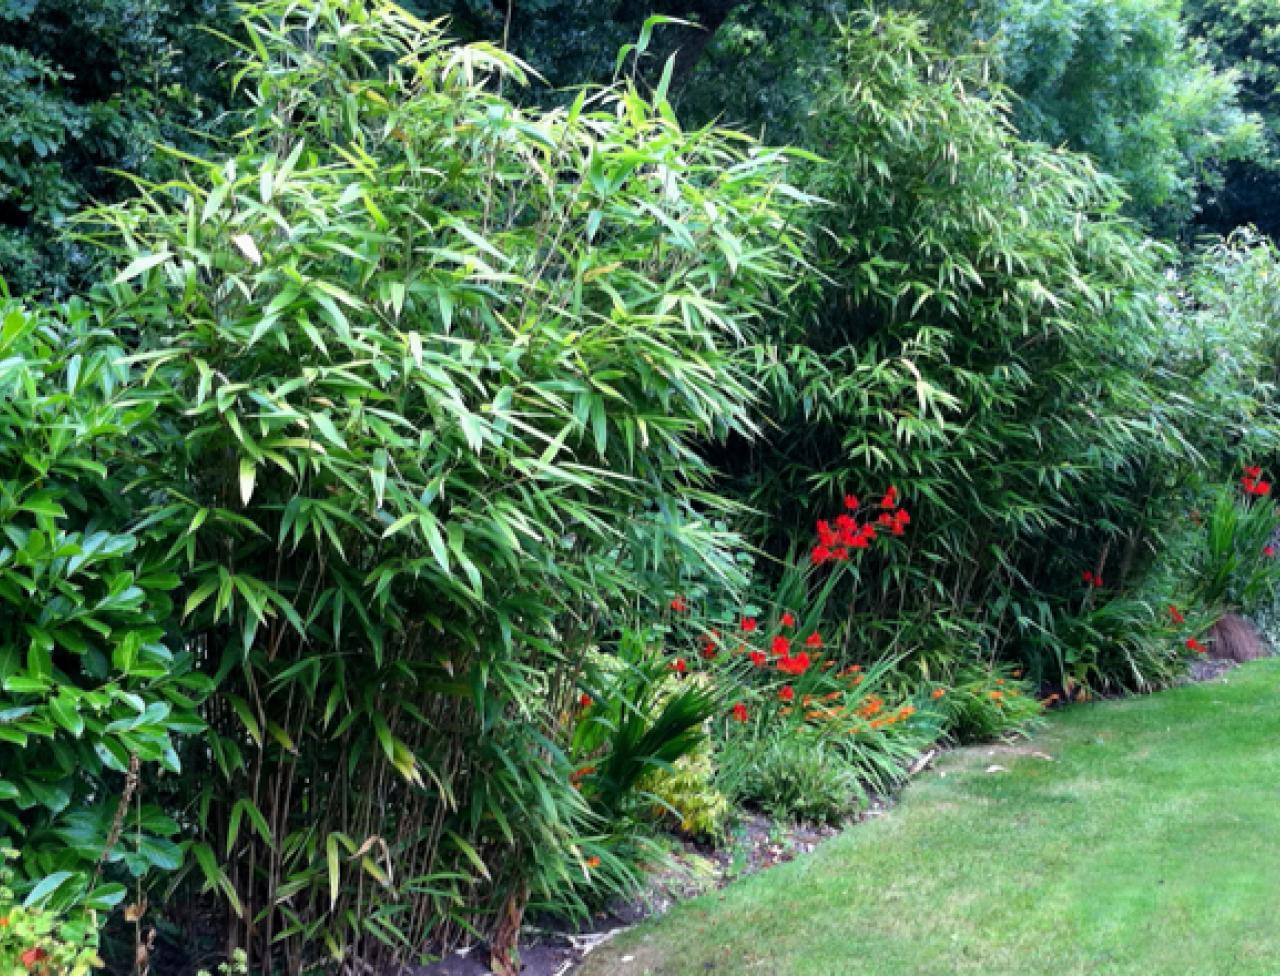 How To Grow Bamboo Miracle Gro, How To Care For Outdoor Bamboo Plants